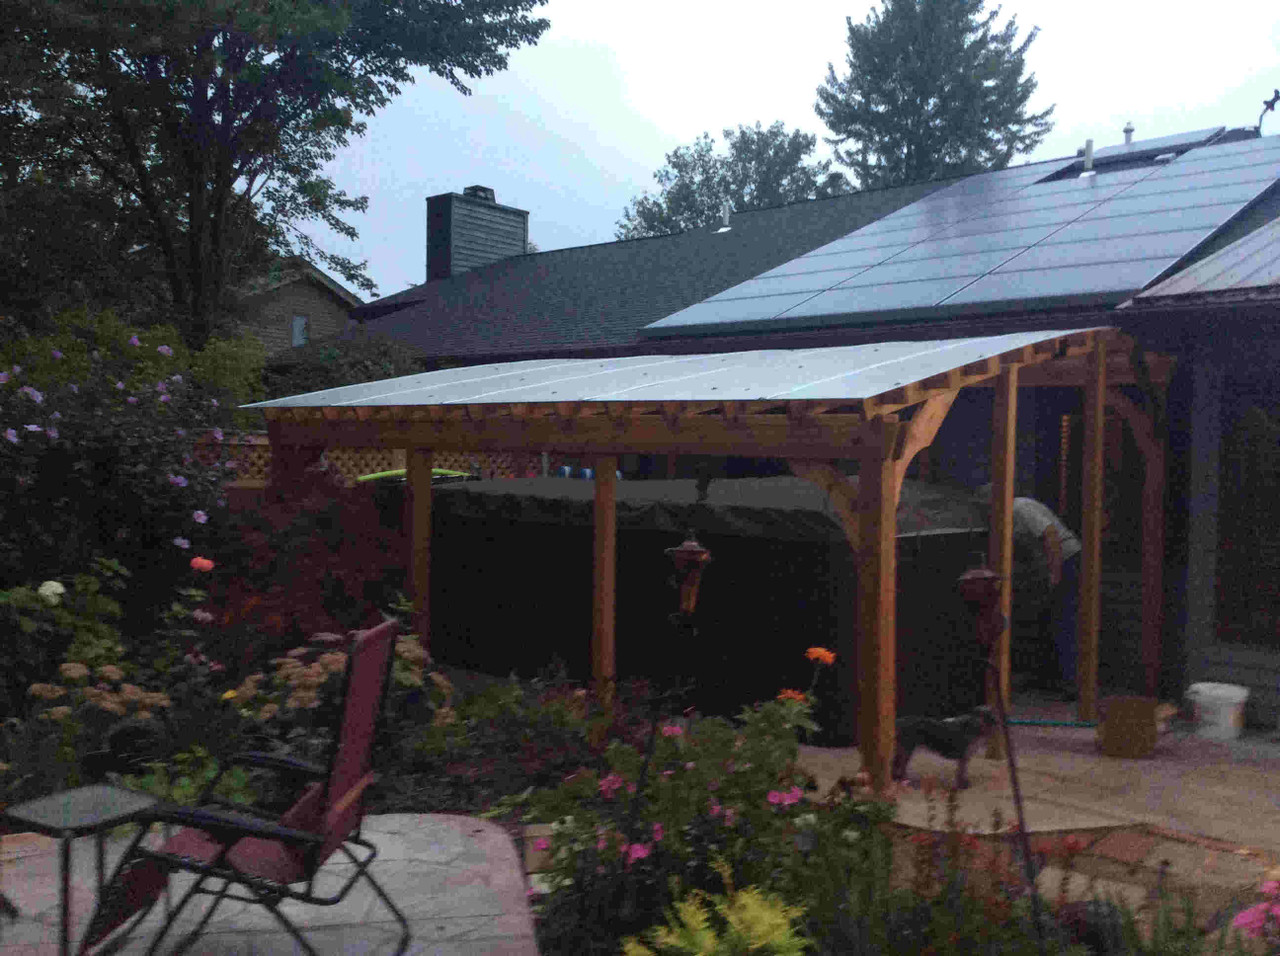 12x18 Custom Arched Cedar Pergola Kit - Slingerlands, New York